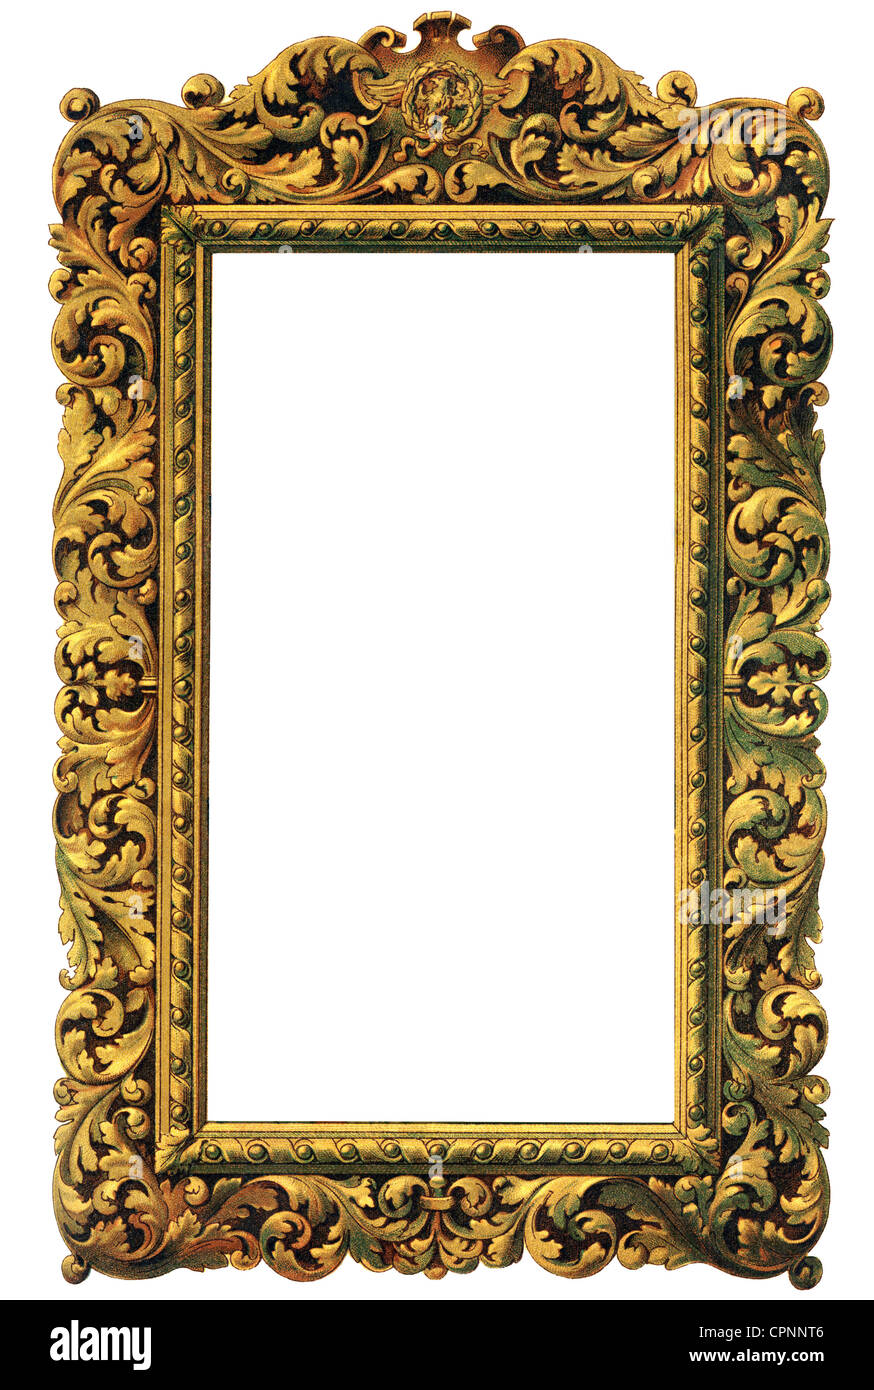 Gilt Gold Frame Stockfotos & Gilt Gold Frame Bilder - Alamy